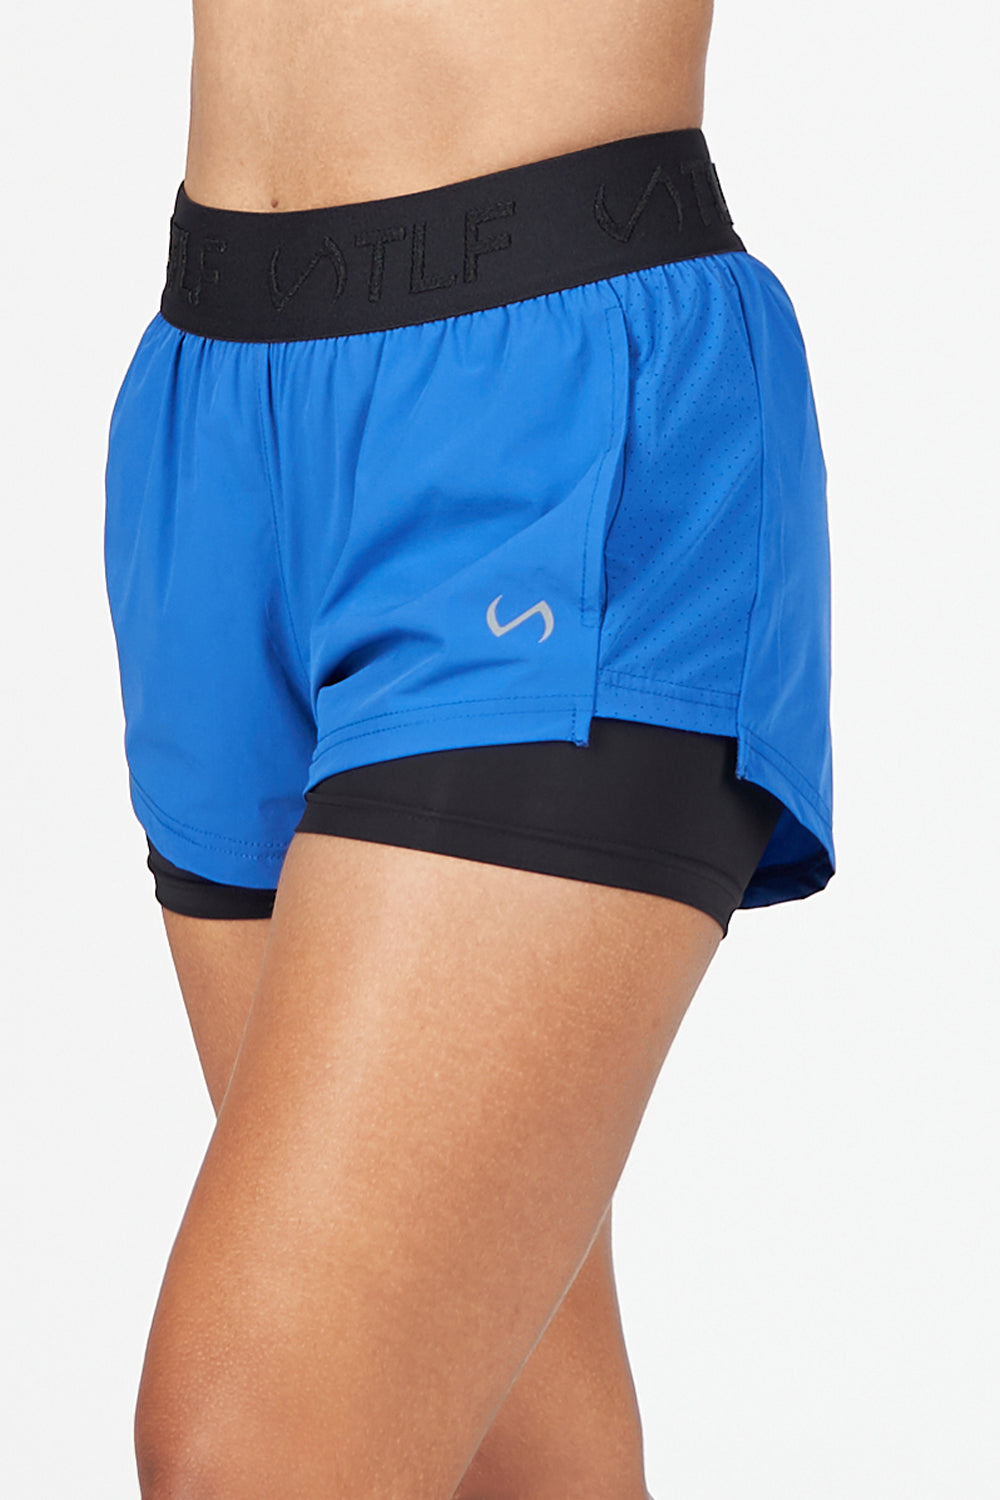 Emerge Train-N-Run™ Emerge 2 in 1 Shorts - TLF Apparel | Take Life Further